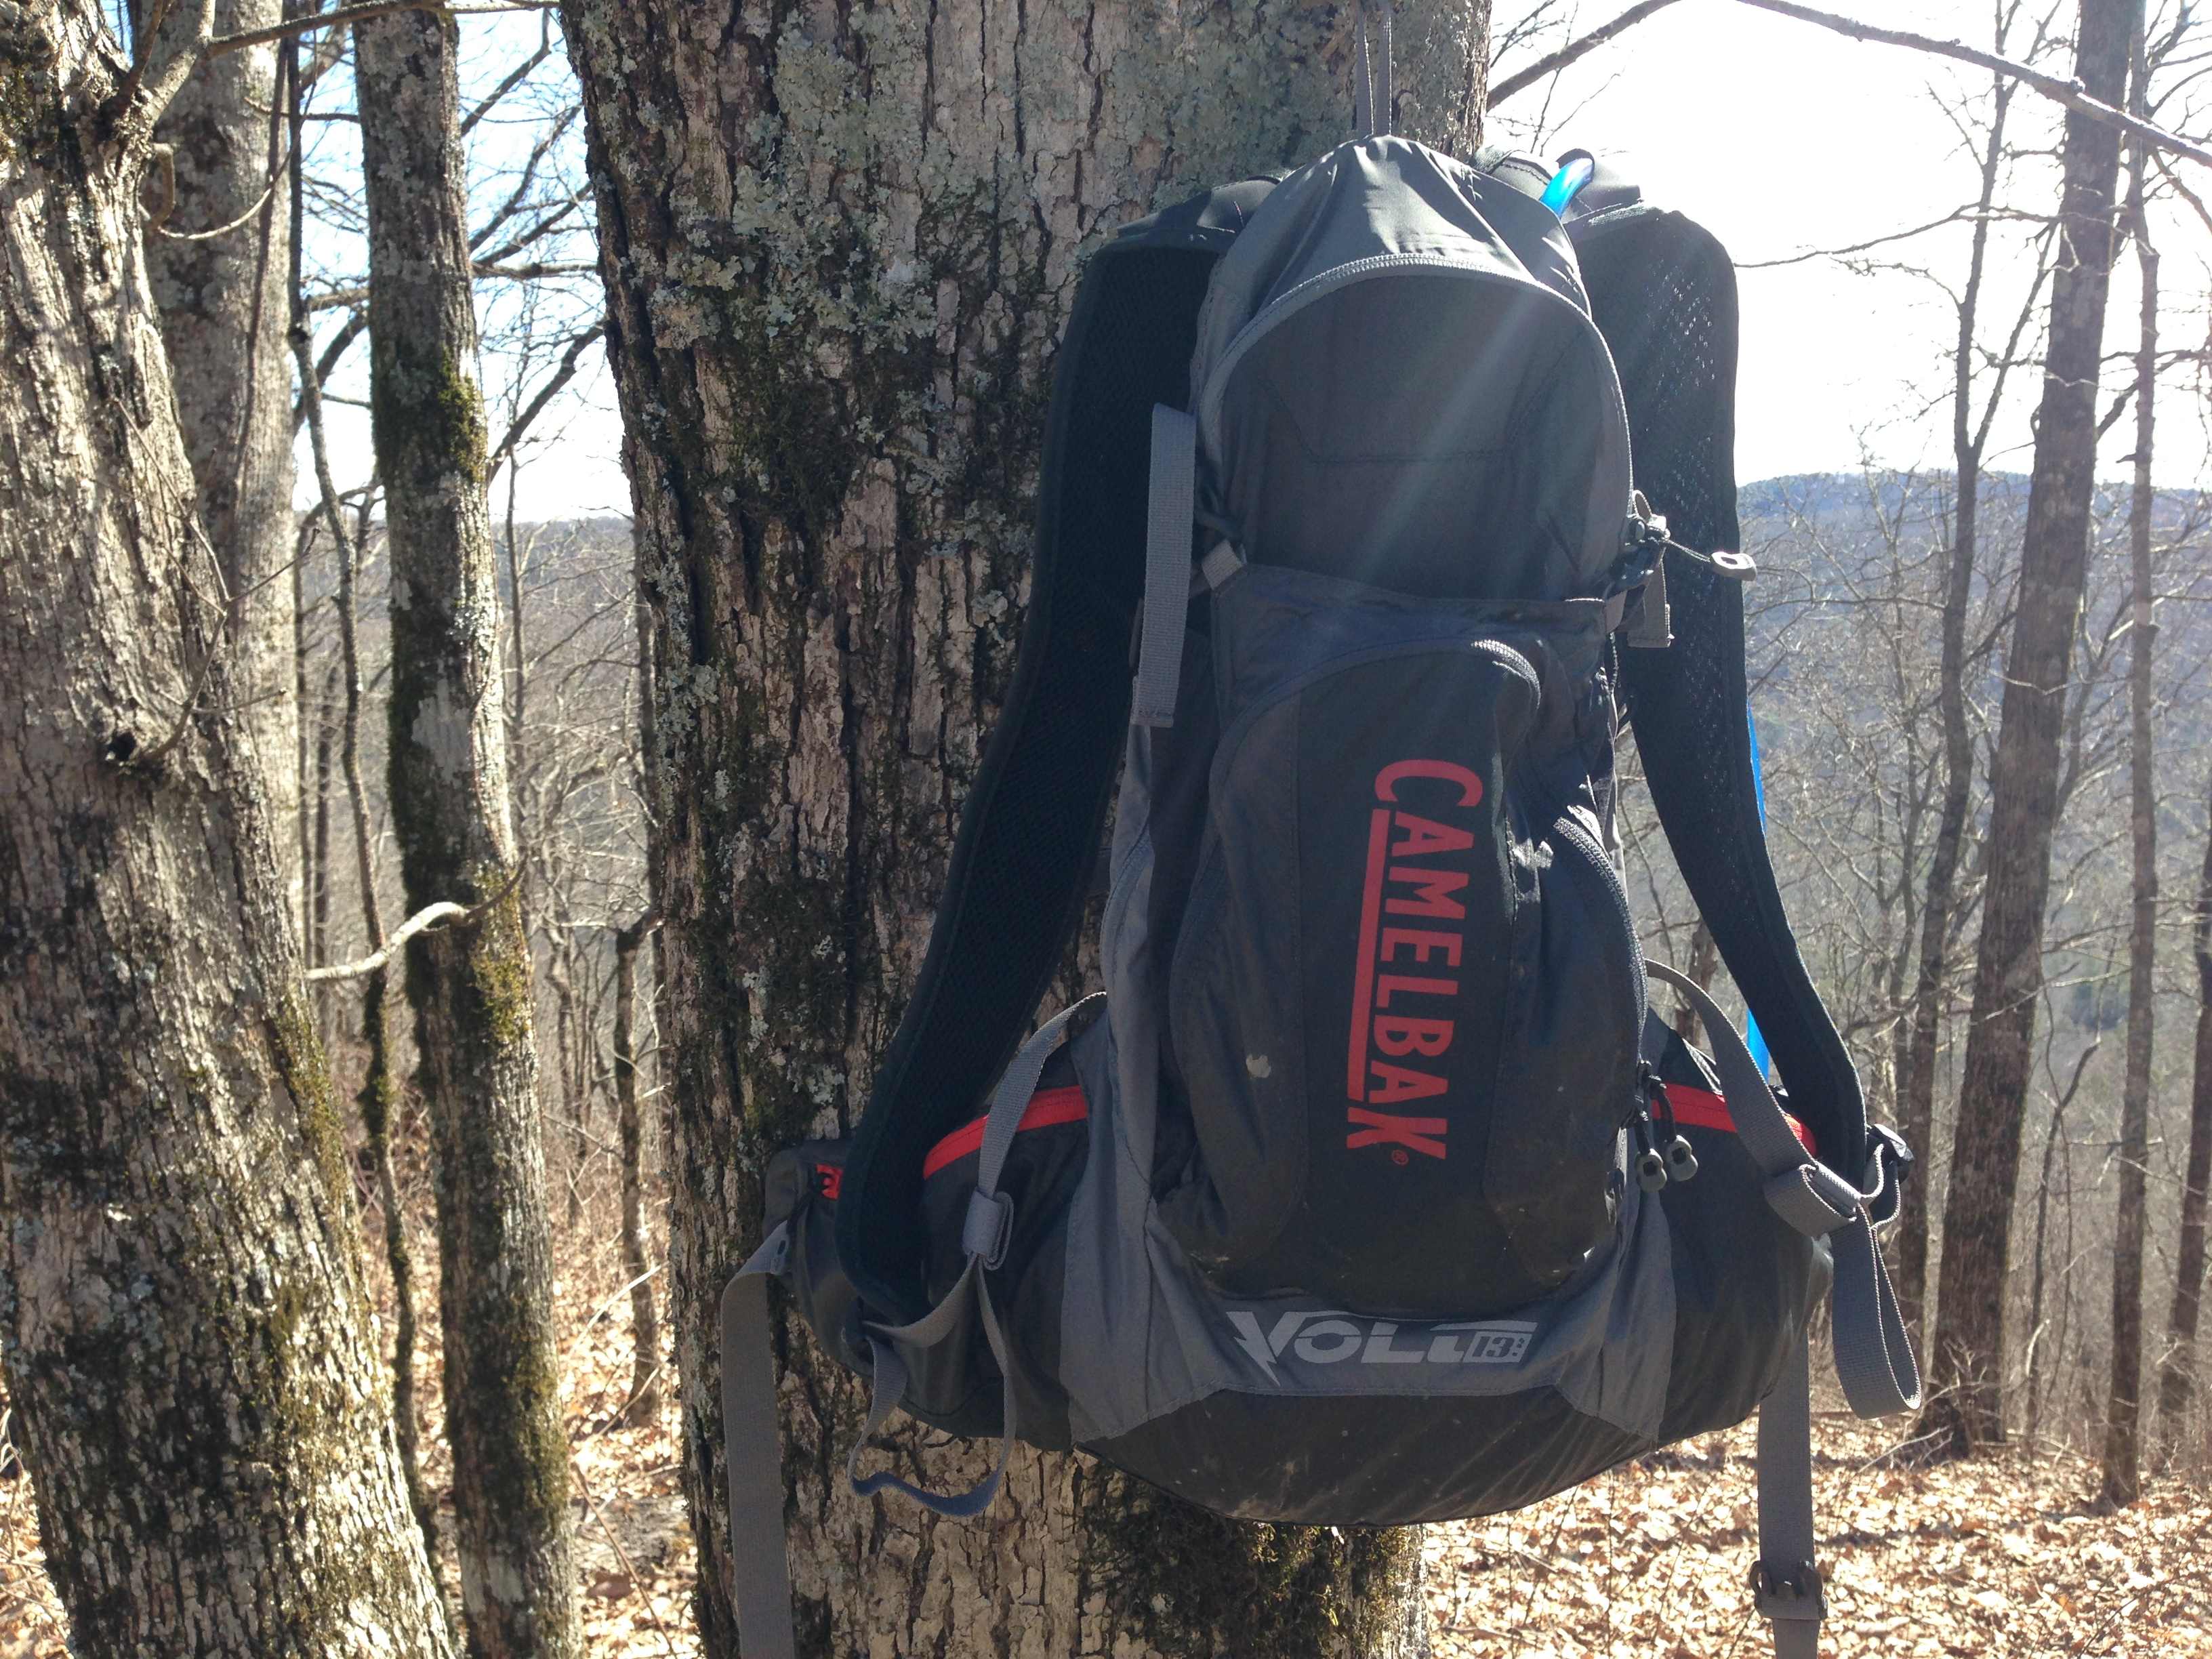 Review: Camelbak Volt 13 LR Lumbar Reservoir Hydration Pack ...